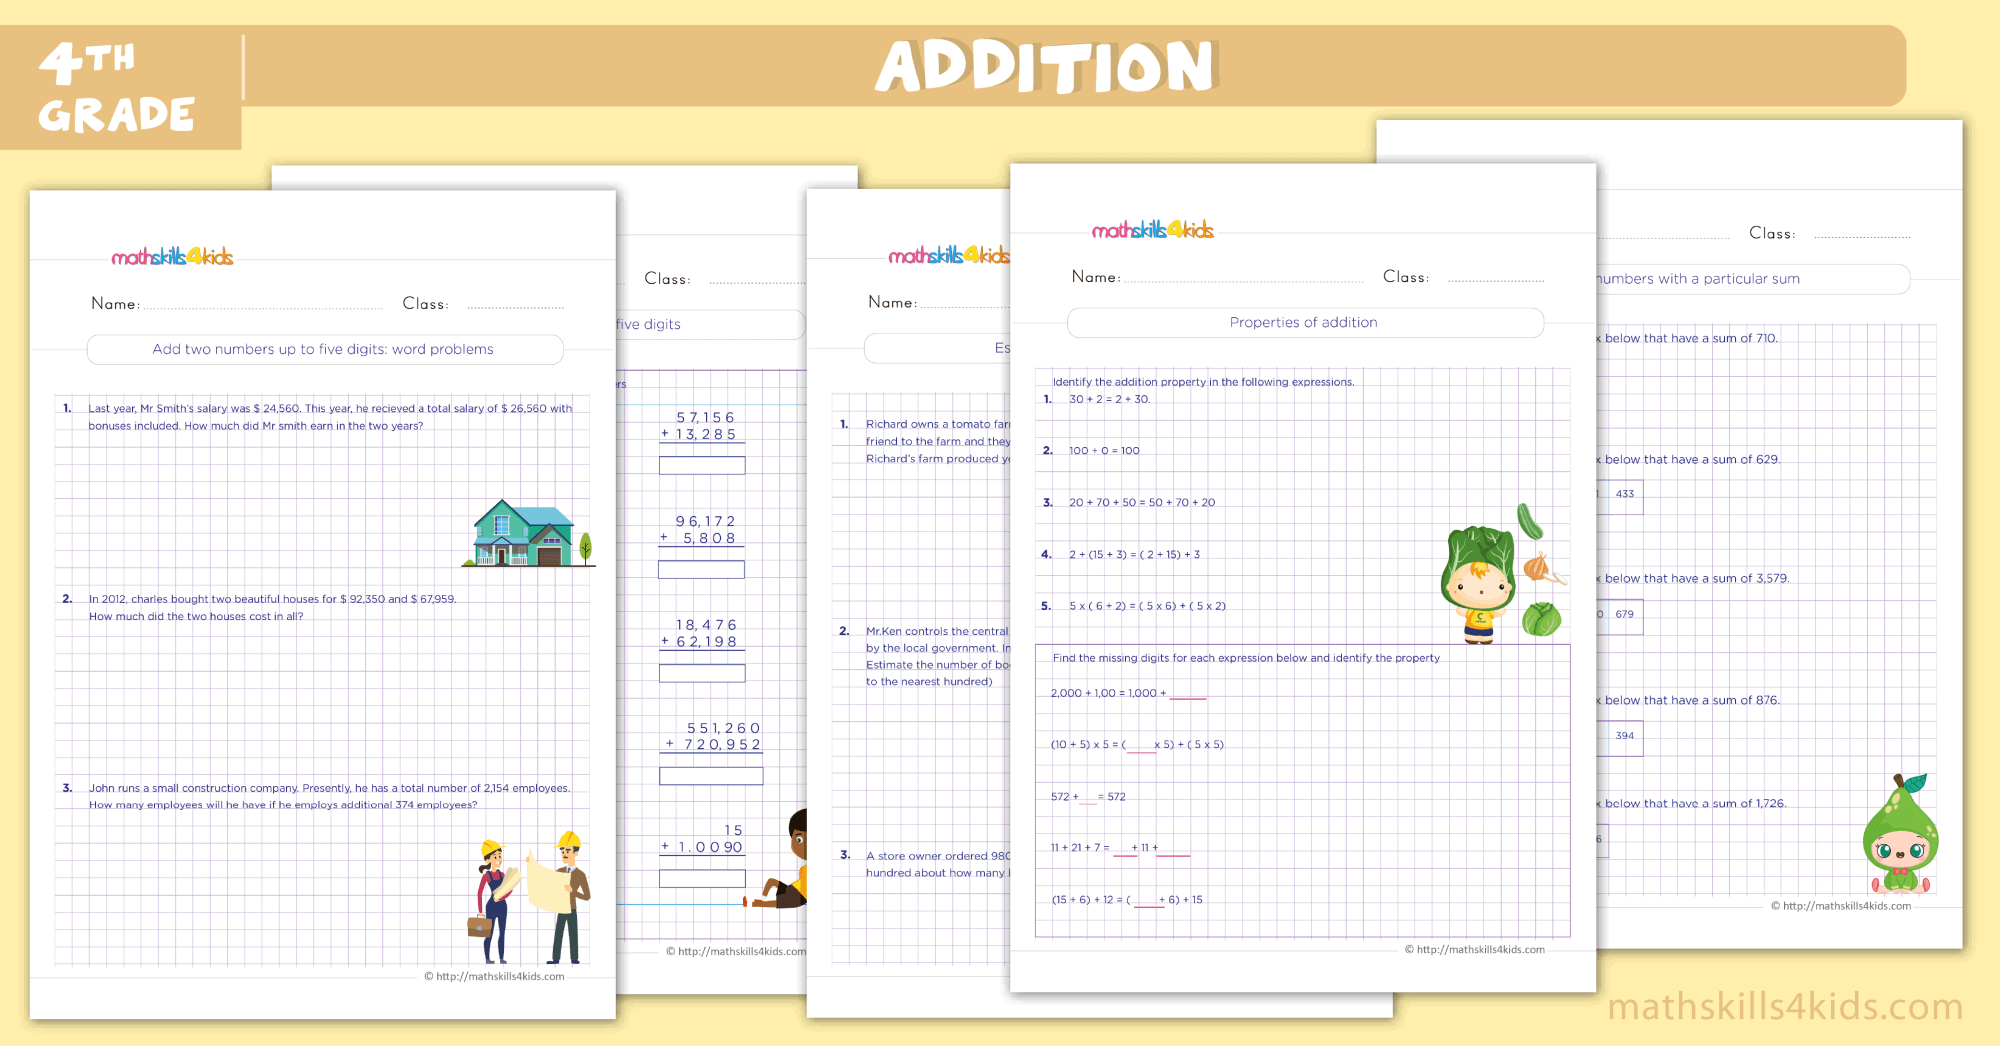 hight resolution of Addition Worksheets for Grade 4 PDF - Addition Sums for Class 4 with Answers